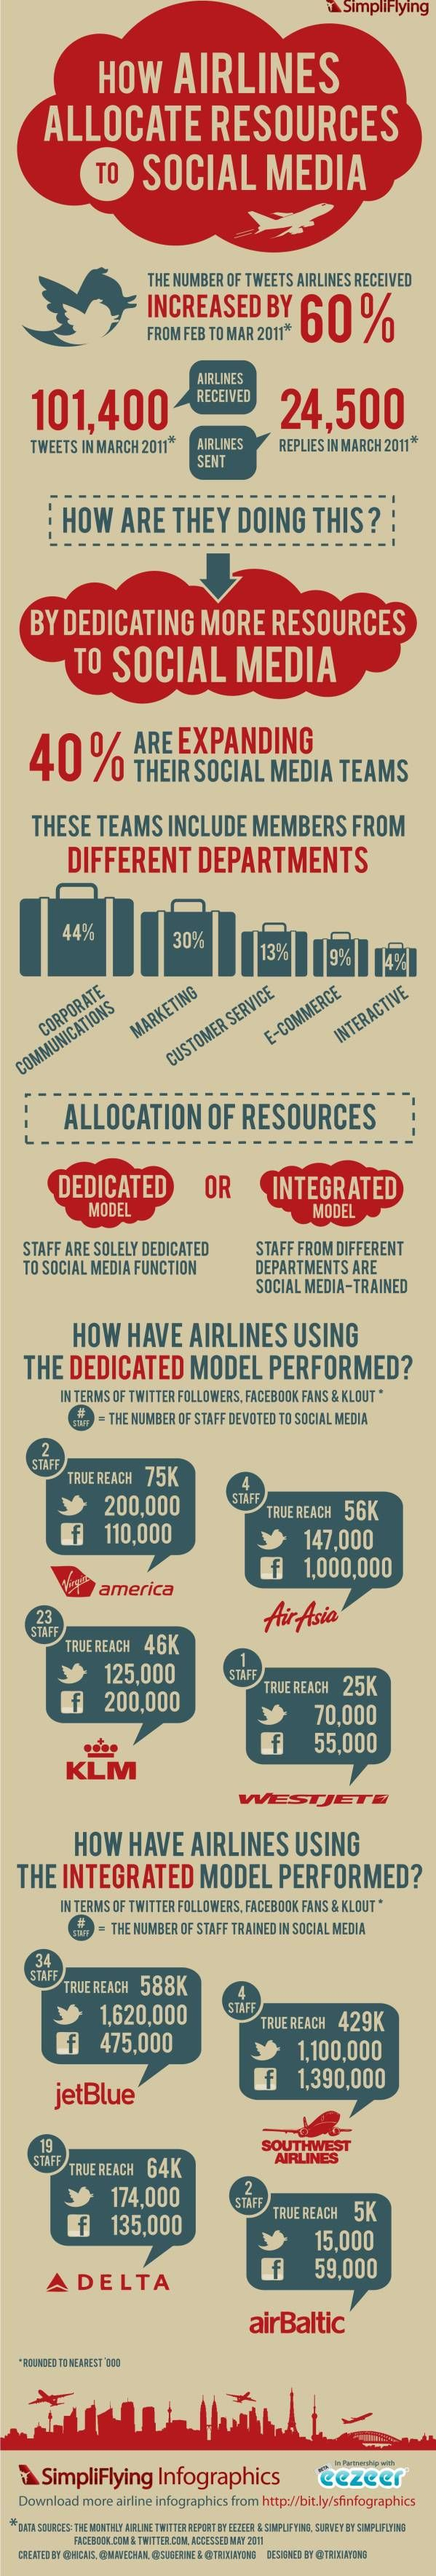 "[ìnfographic] ""How Airlines allocate resources to social Media"" Jun-2011 by Simpliflying.com"